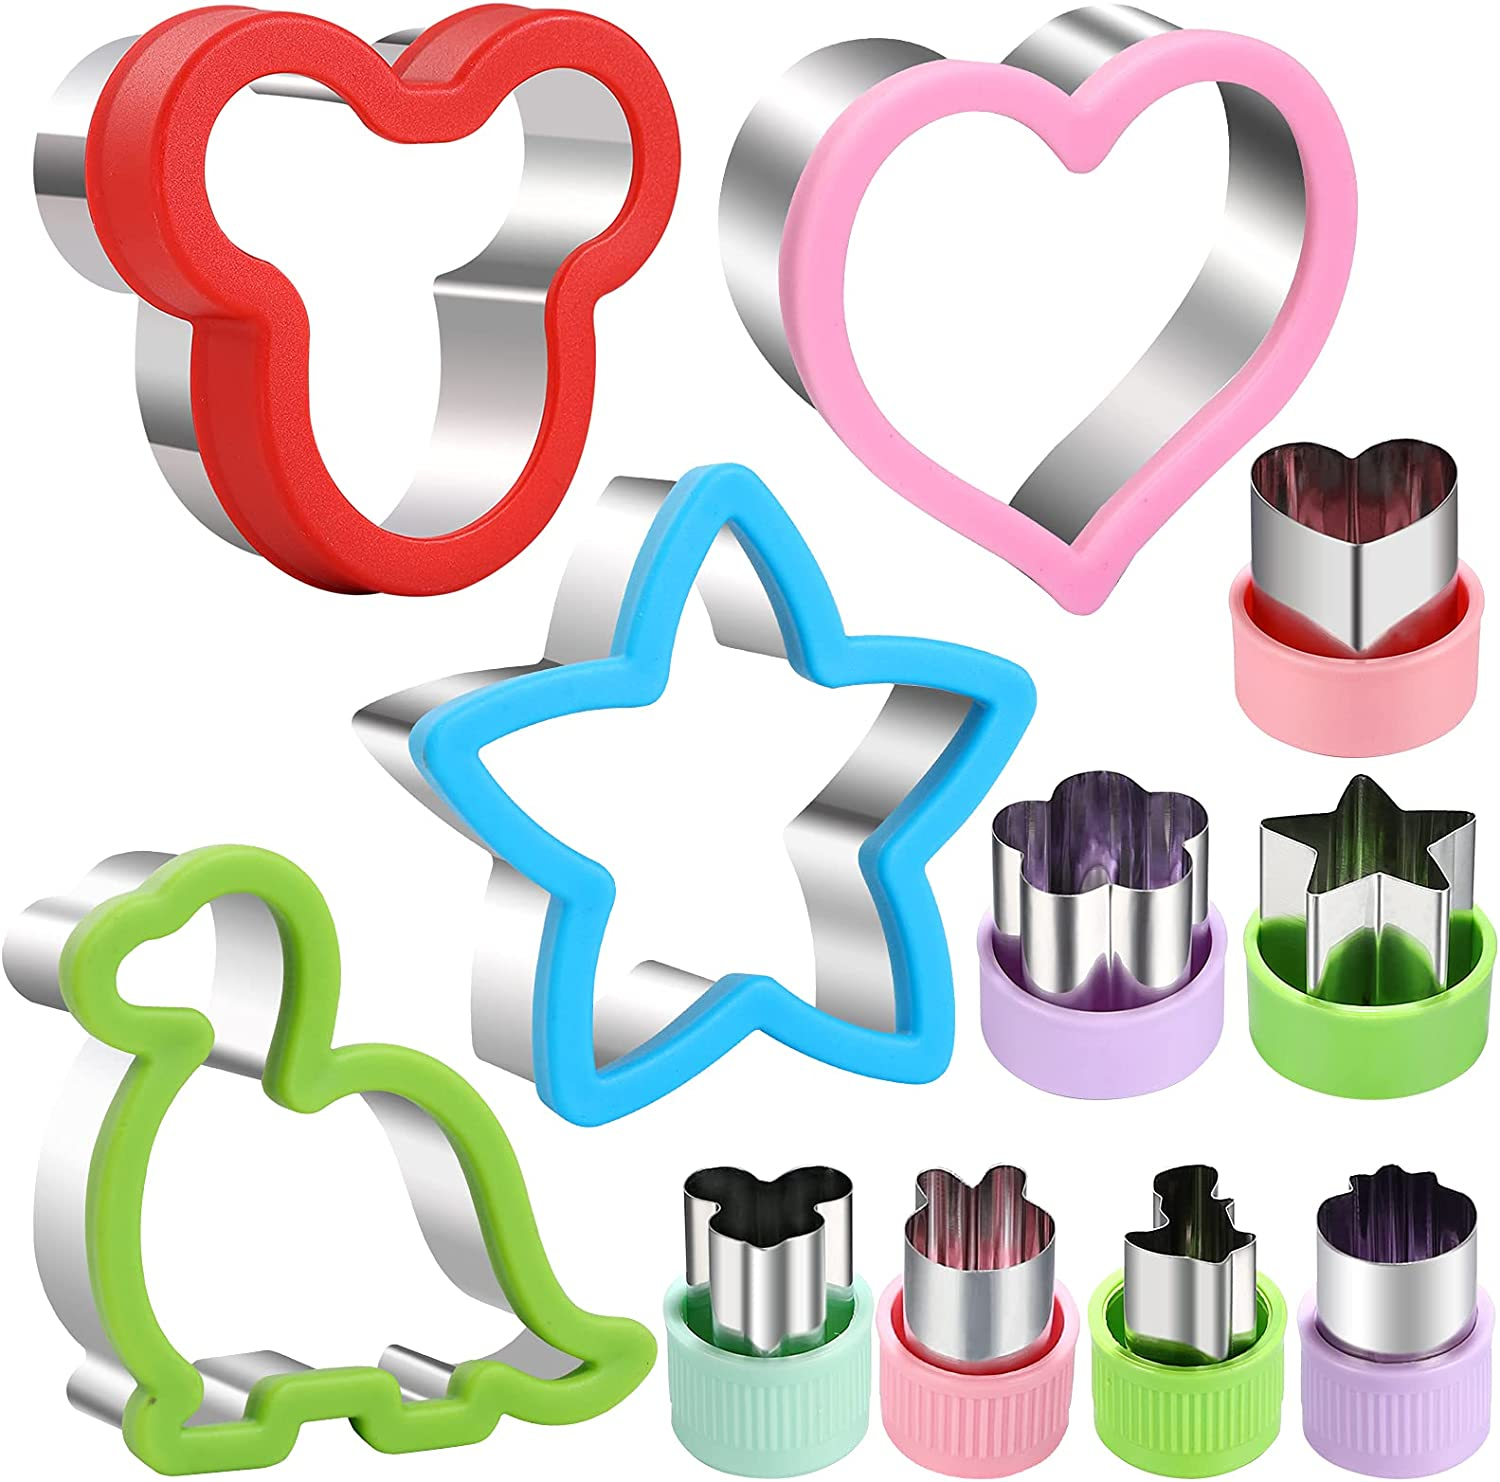 Sandwiches cookie Cutter set, Mickey Mouse & Dinosaur & Heart & Star Shapes Sandwich Cutters Cookie Cutters Vegetable cutters-Food Grade Cookie Cutter Stamps Mold Decorate Food for Kids